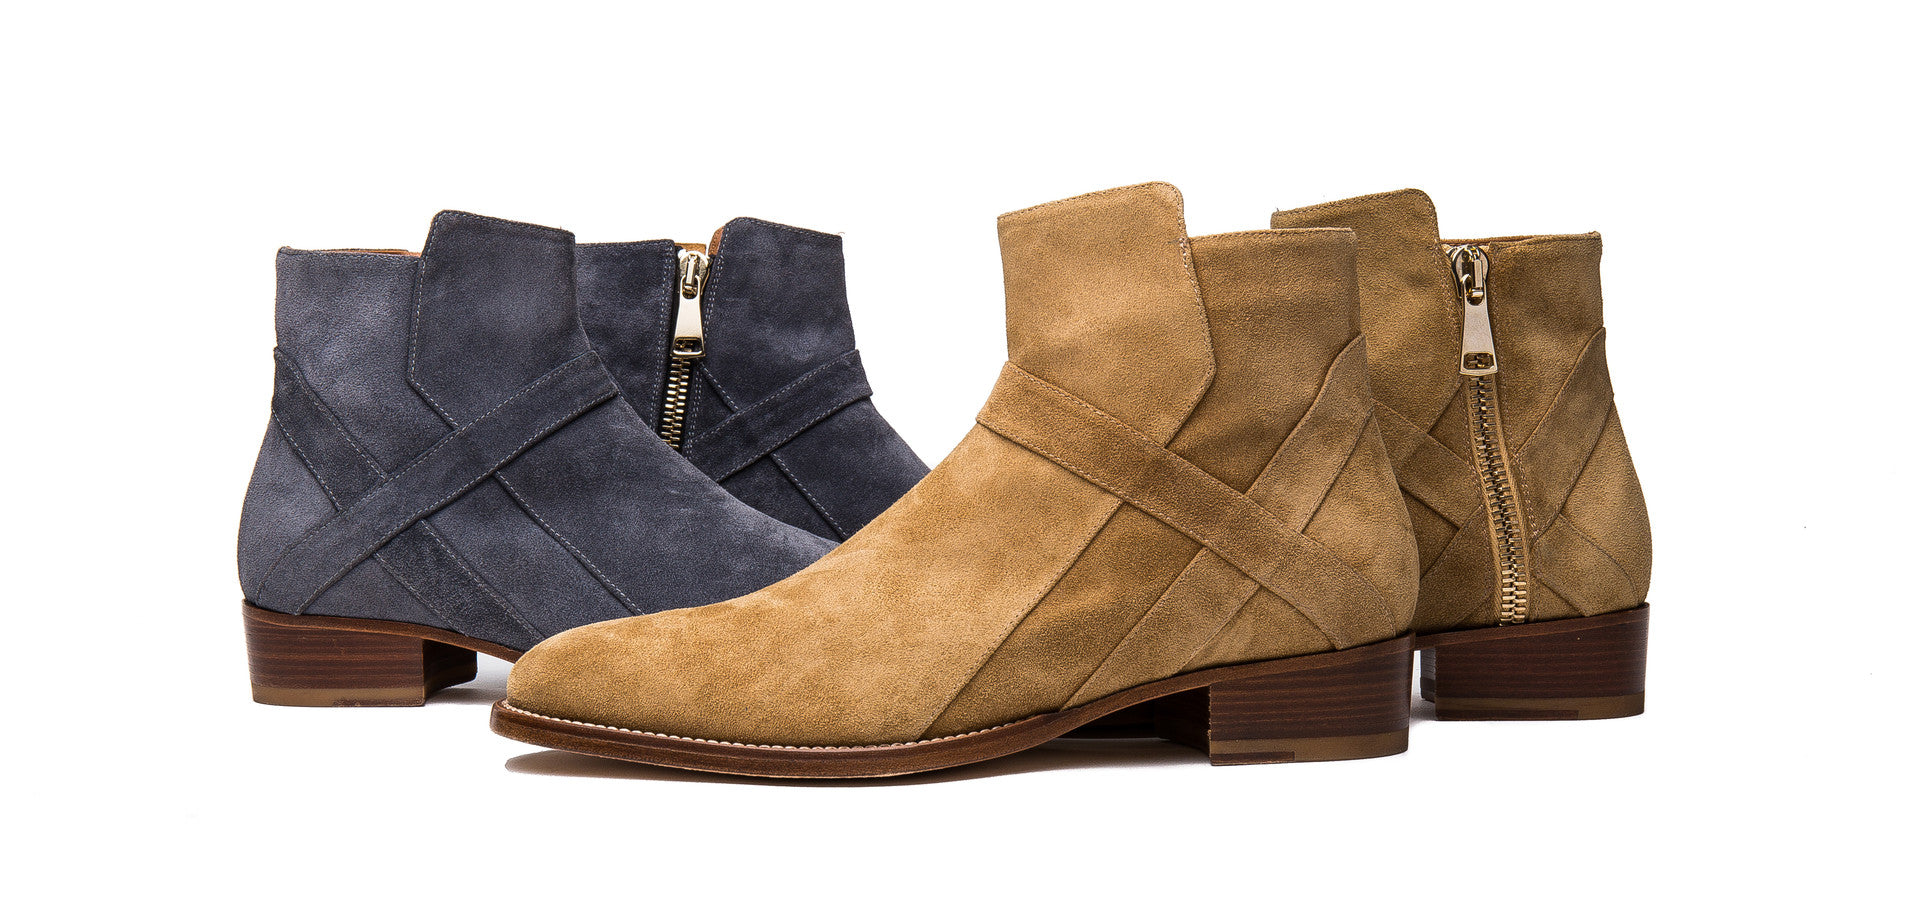 The Grand Voyage Shoes Footwear